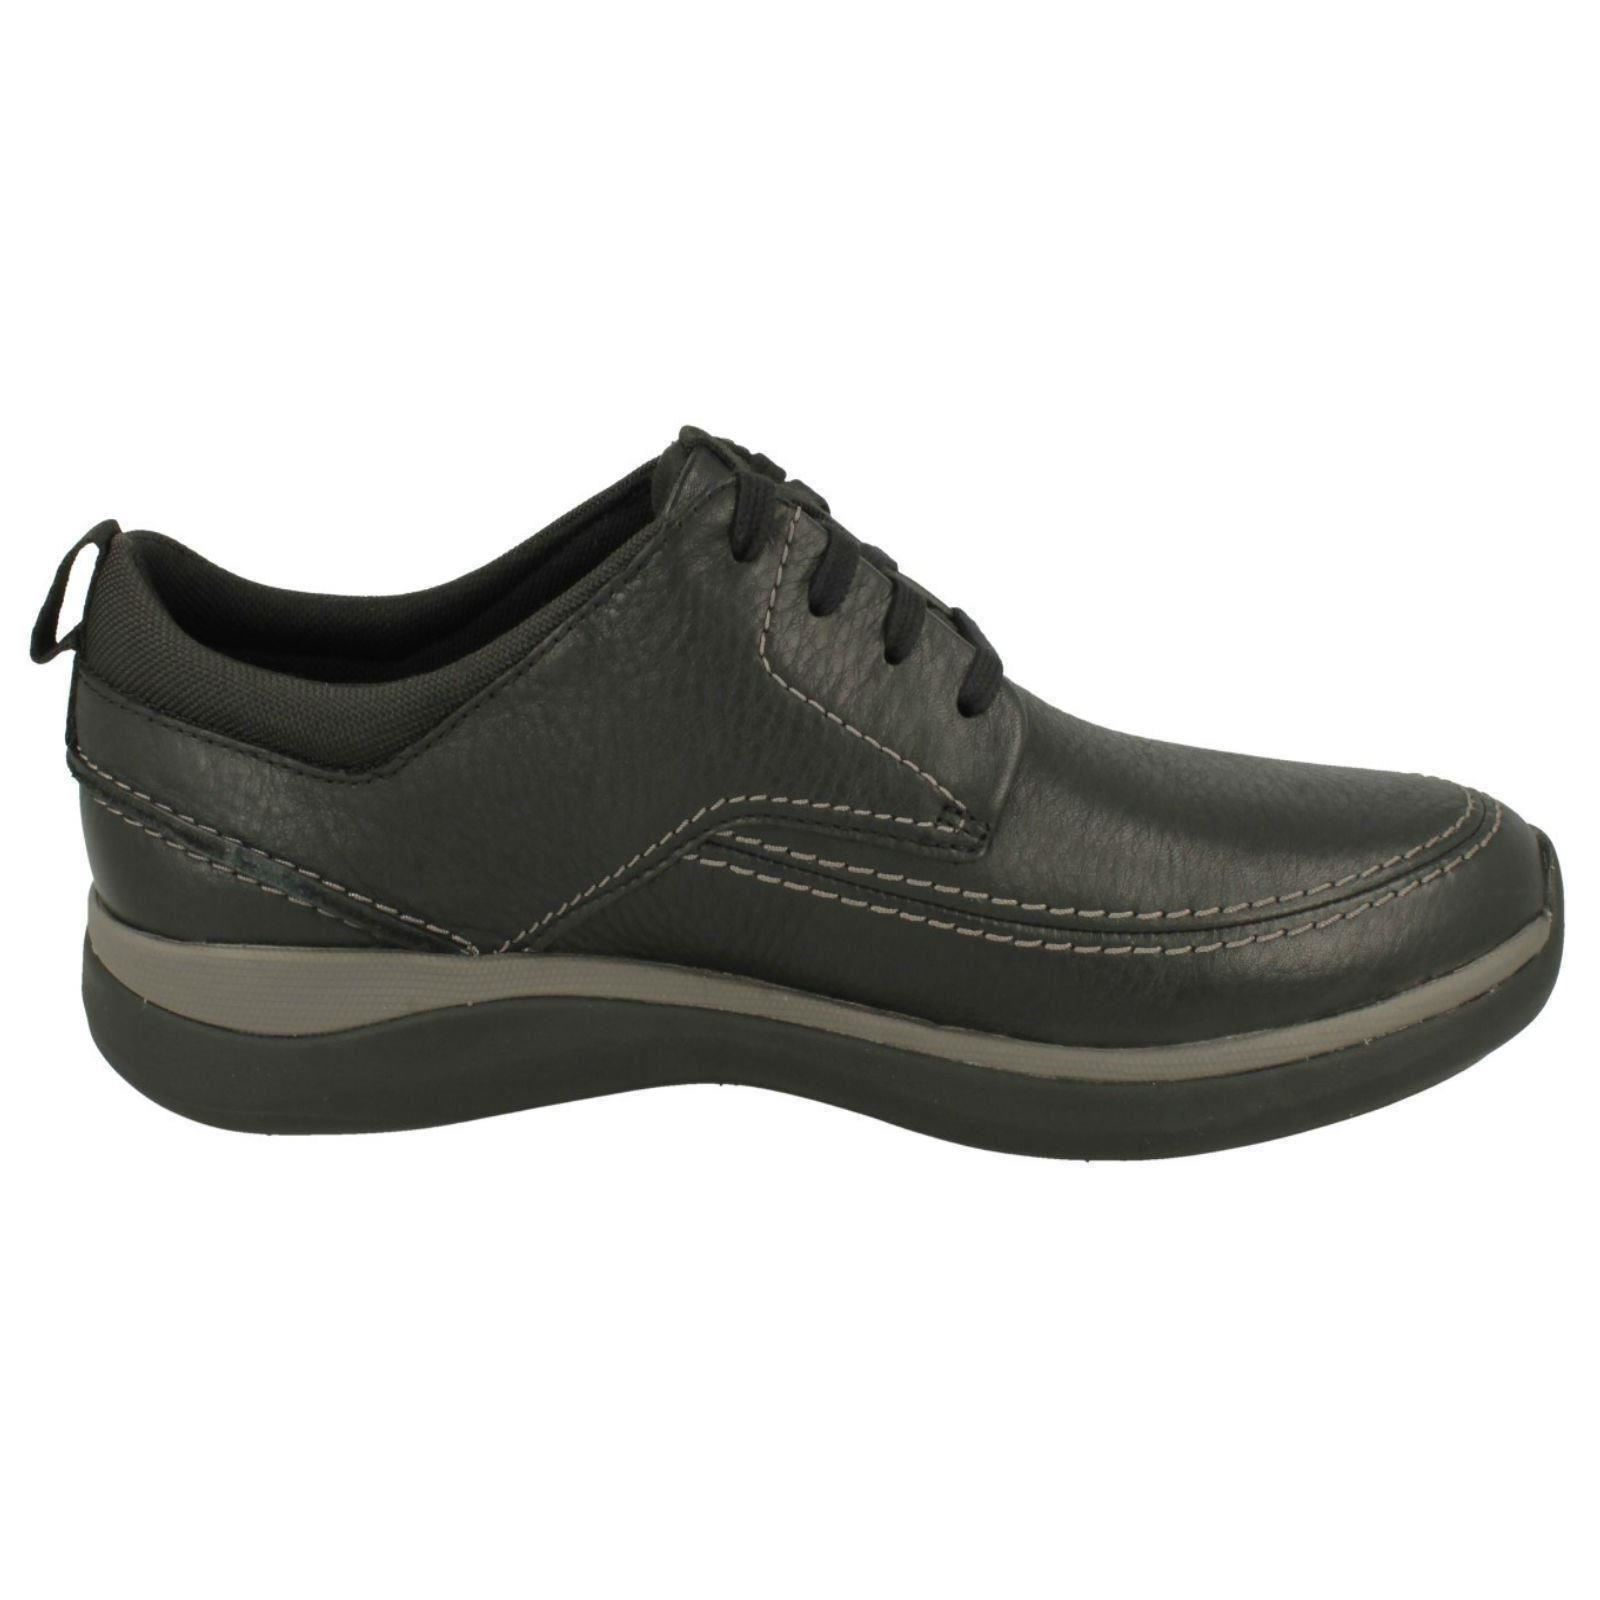 Mens-Unstructured-by-Clarks-Lace-Up-Shoes-039-Garratt-Street-039 thumbnail 3